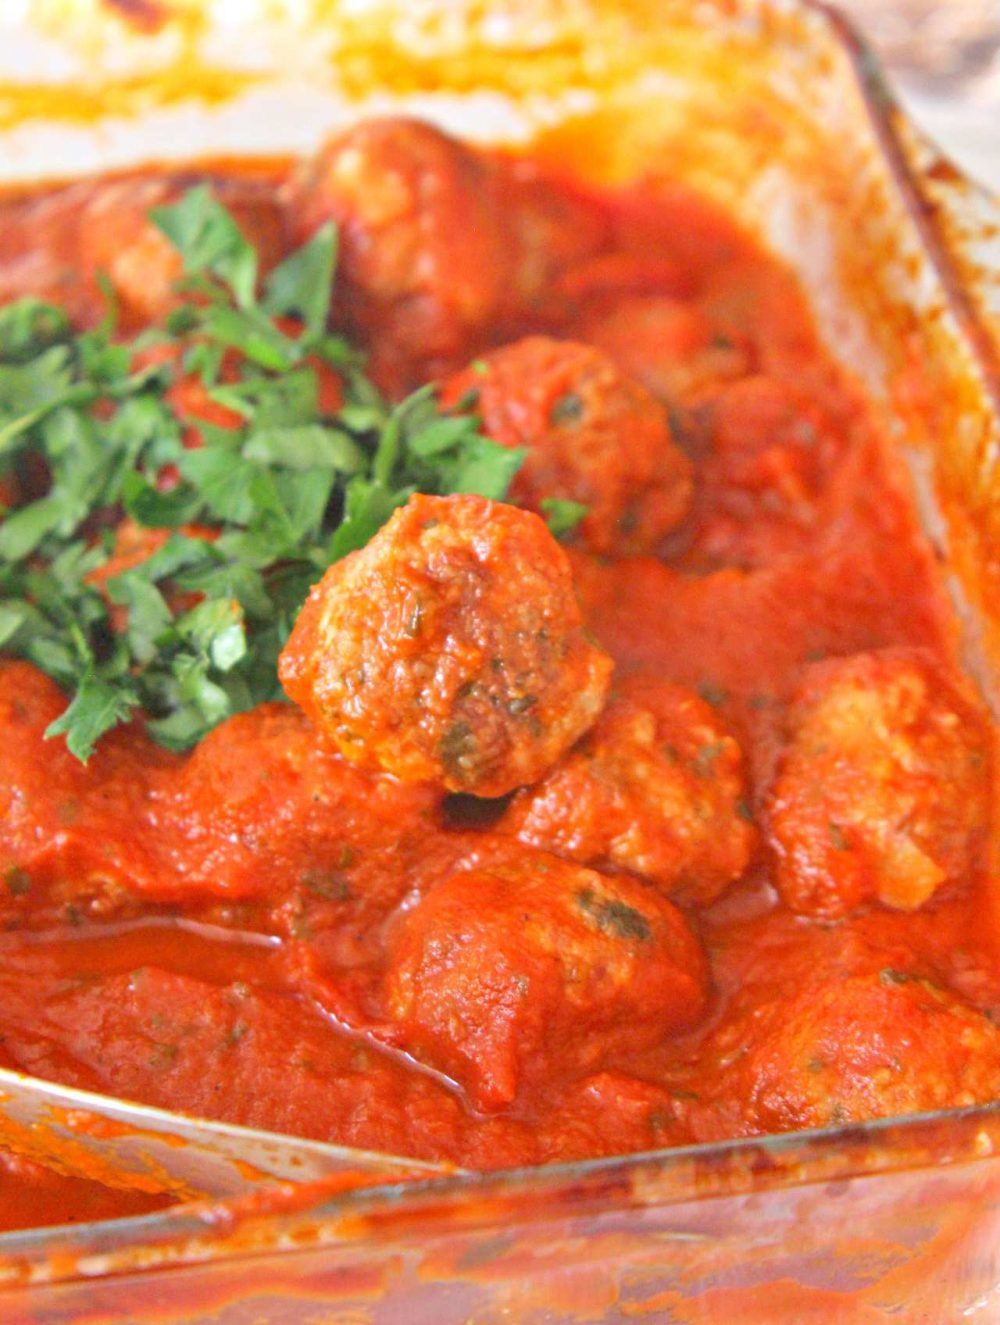 Baked meatballs with sauce